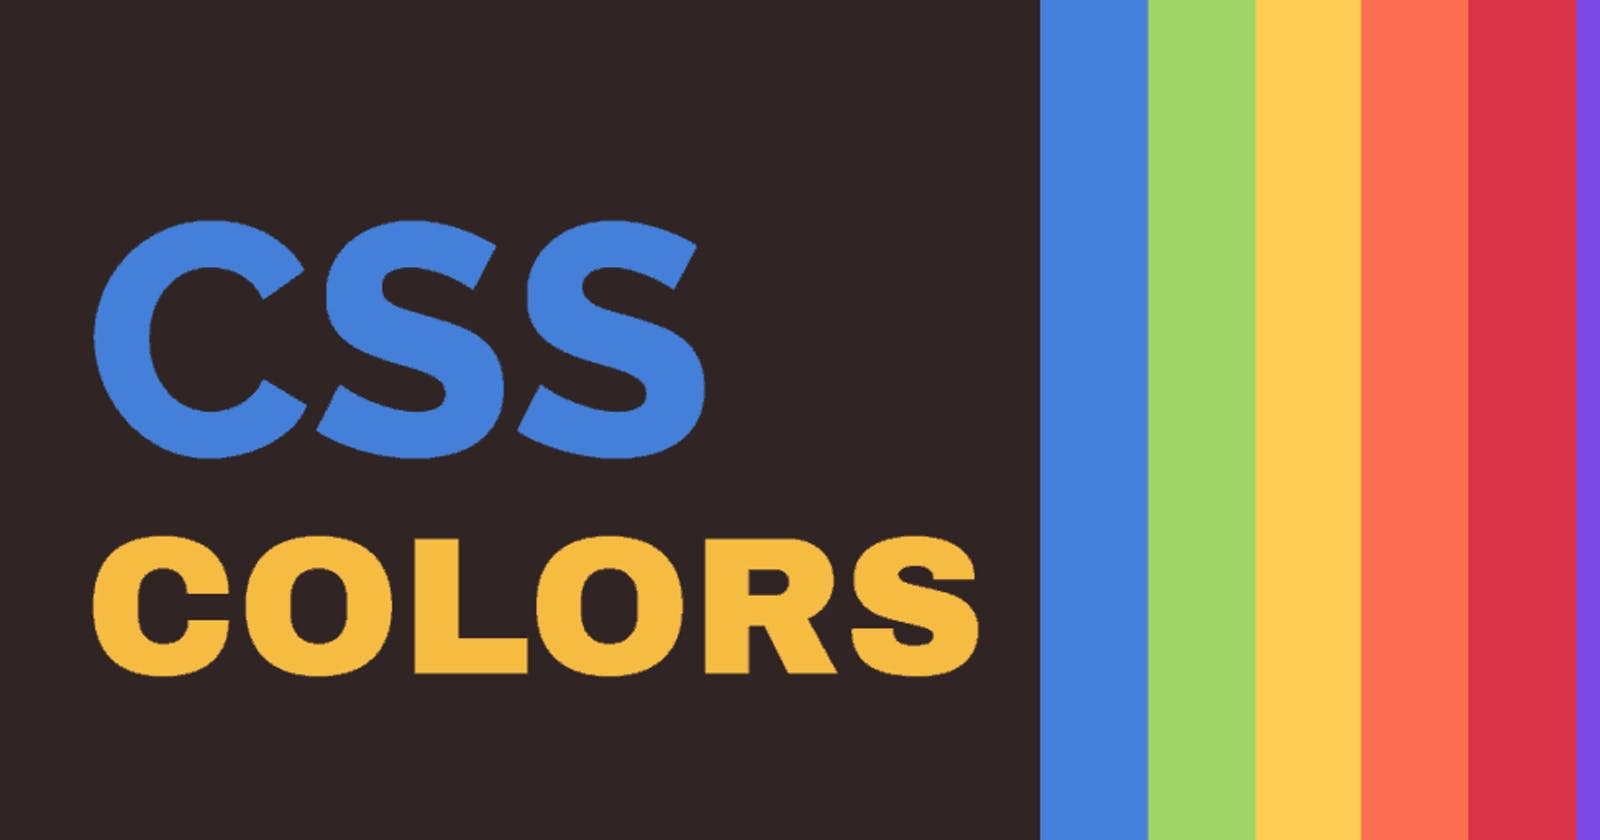 All the ways to color your text in CSS